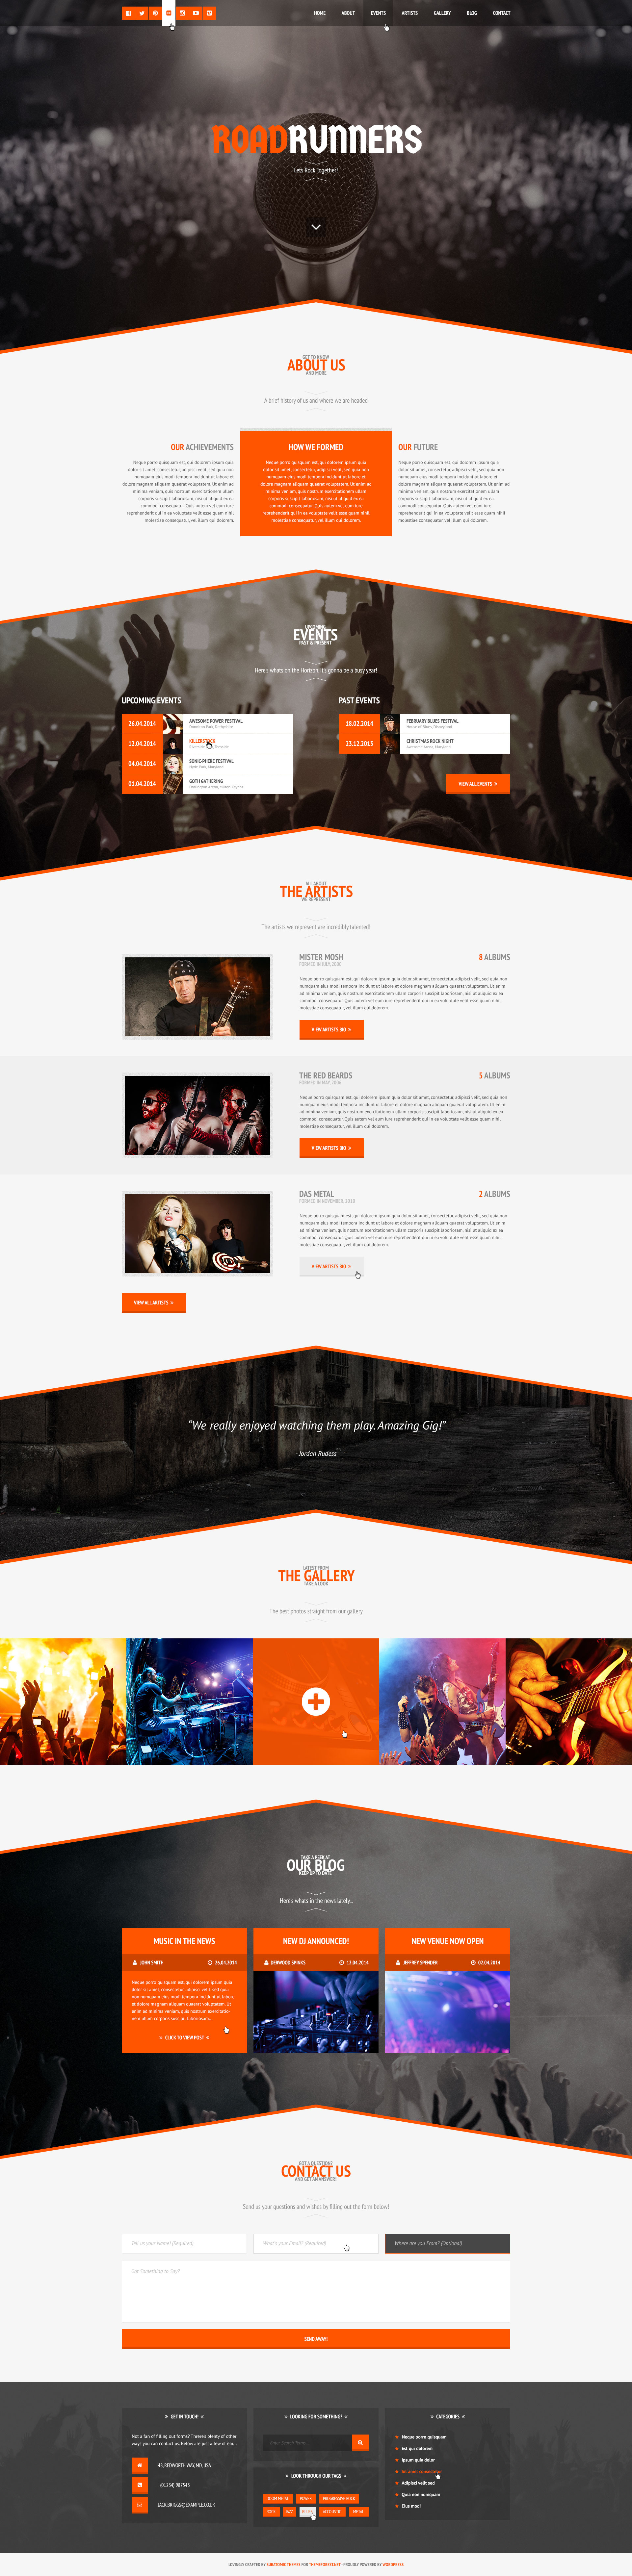 Latest Photo of  RoadRunners A One Page Music WordPress Theme